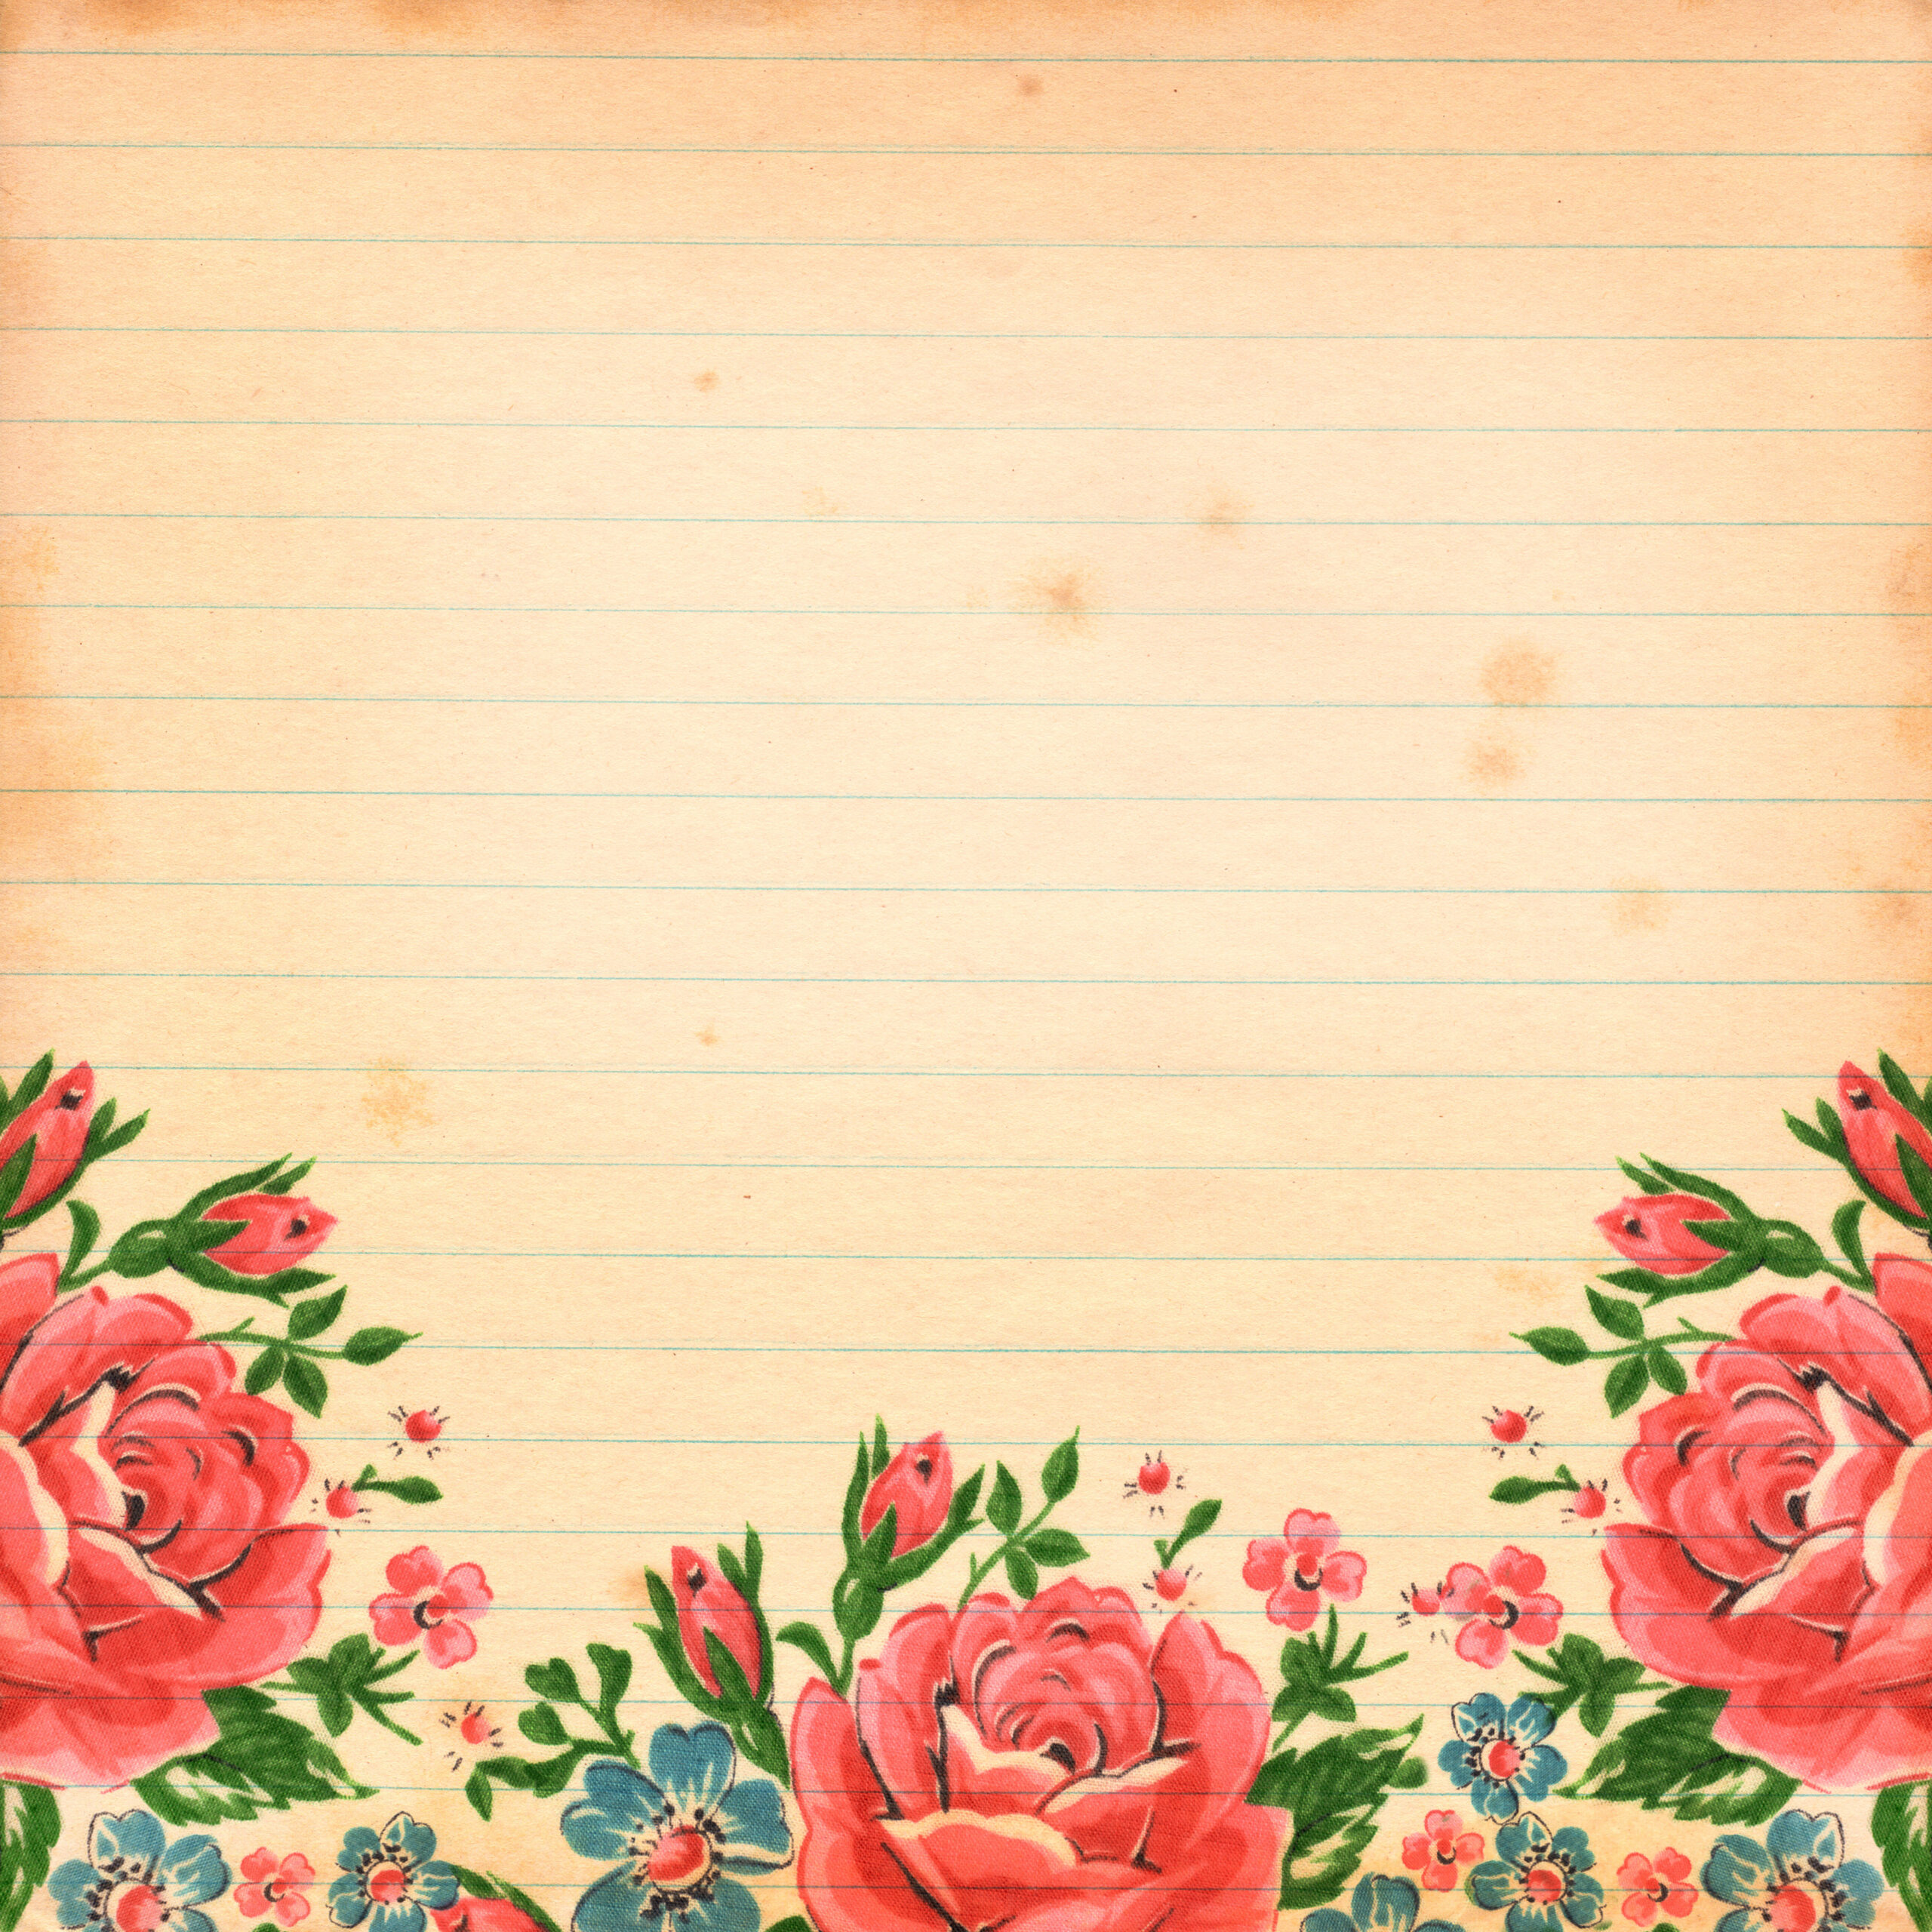 Vintage Flower Paper Kampa Luckincsolutions Org